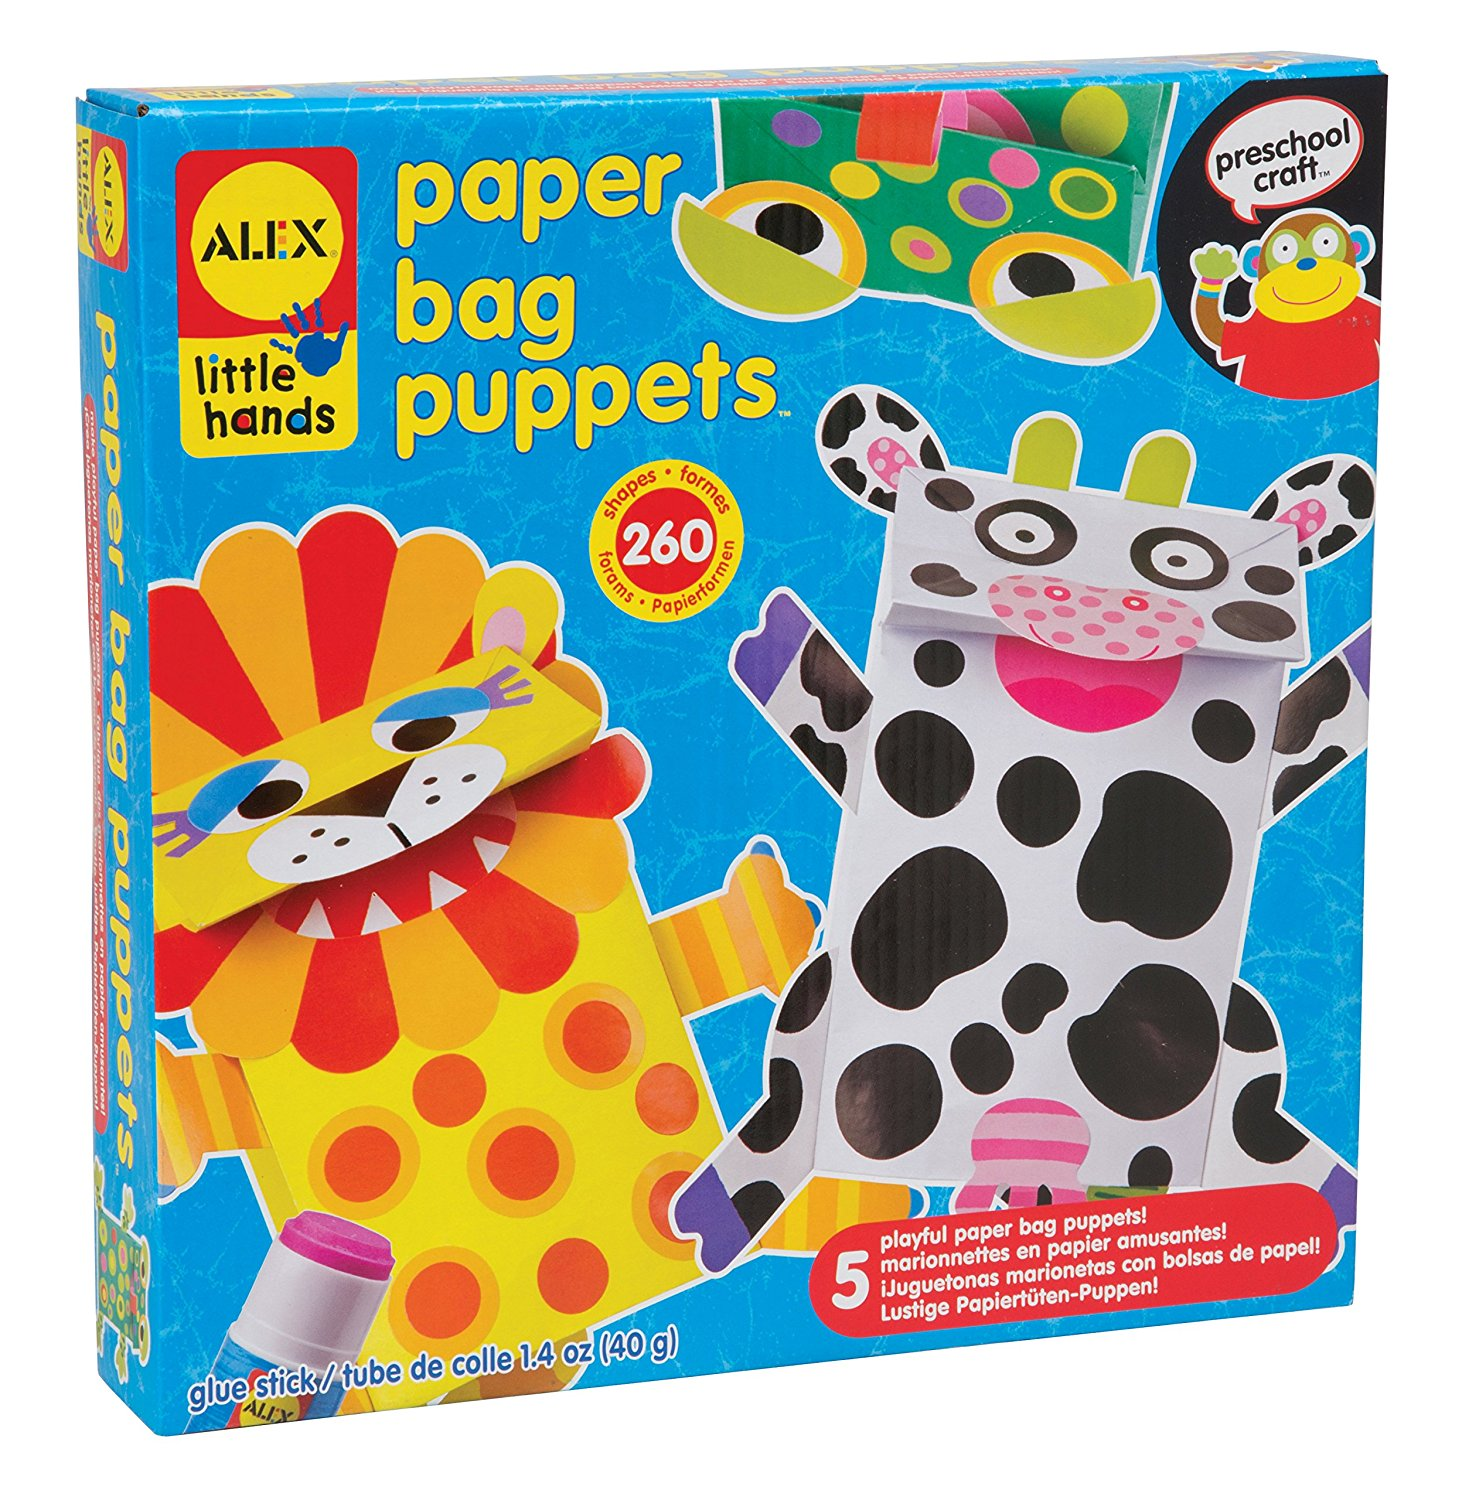 ALEX Toys Little Hands Paper Bag Puppets SALE ALERT